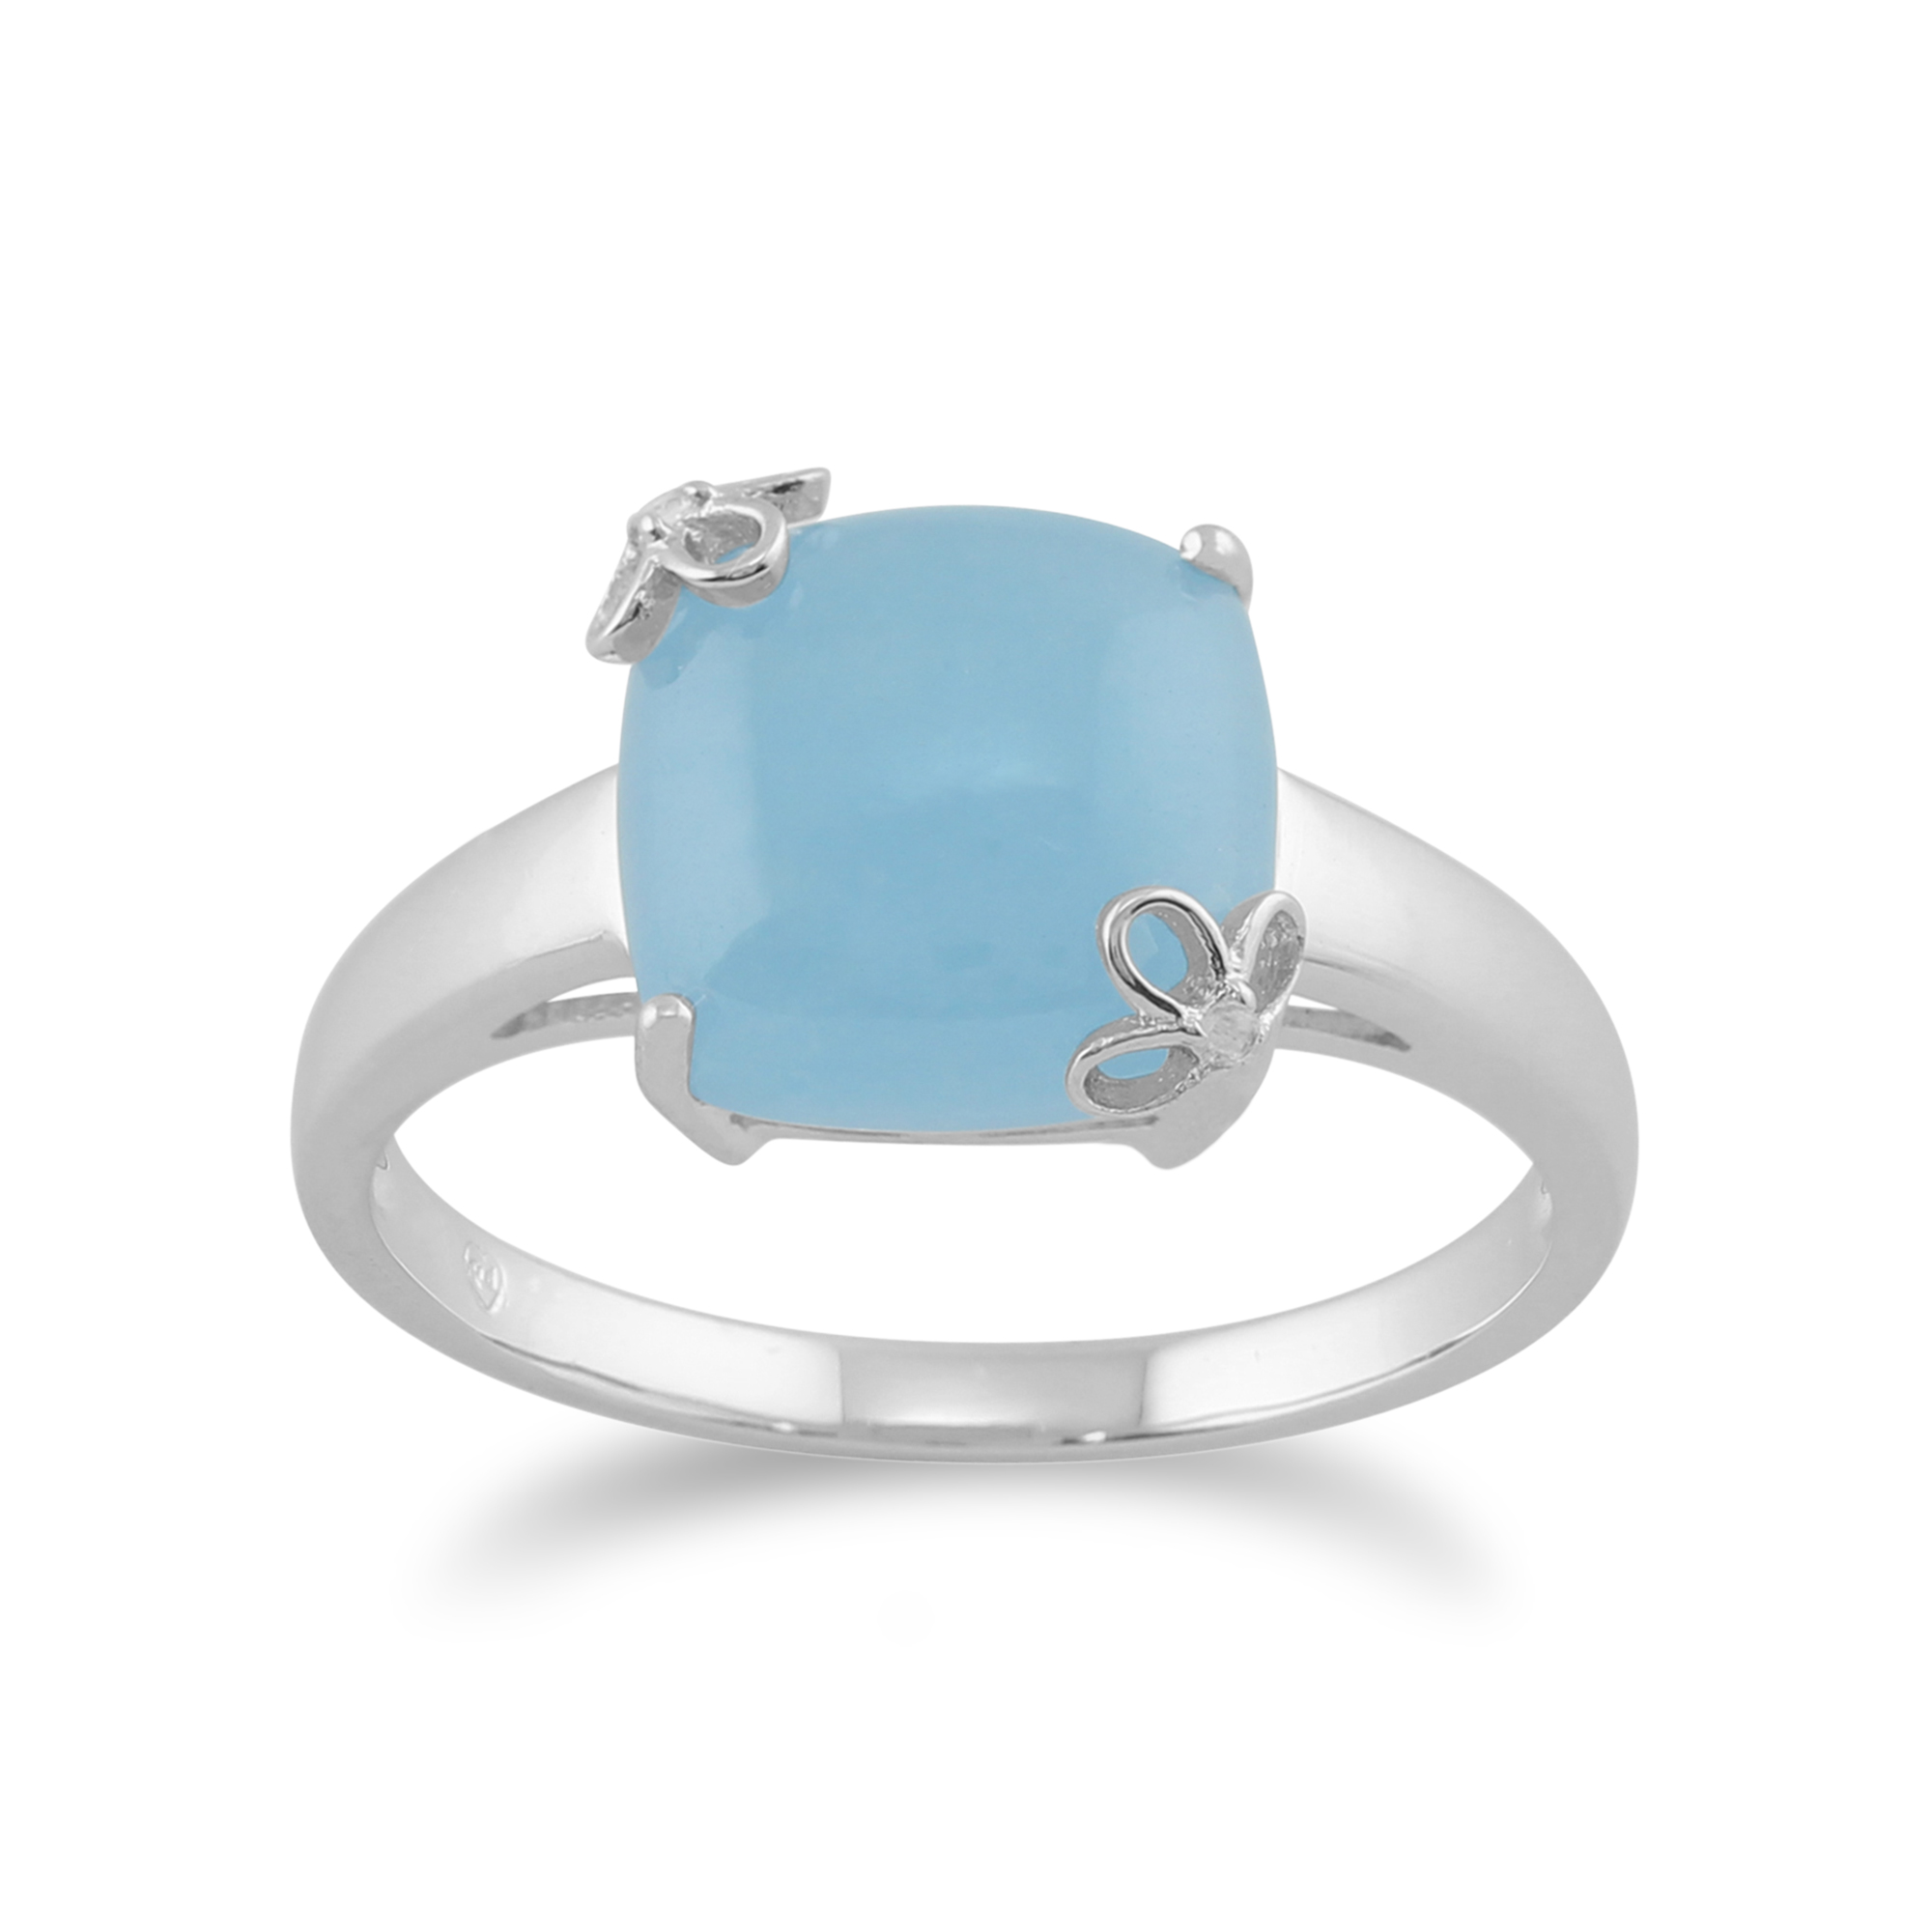 Gemondo 925 Sterling Silver 4.33ct Blue Jade & White Topaz Ring